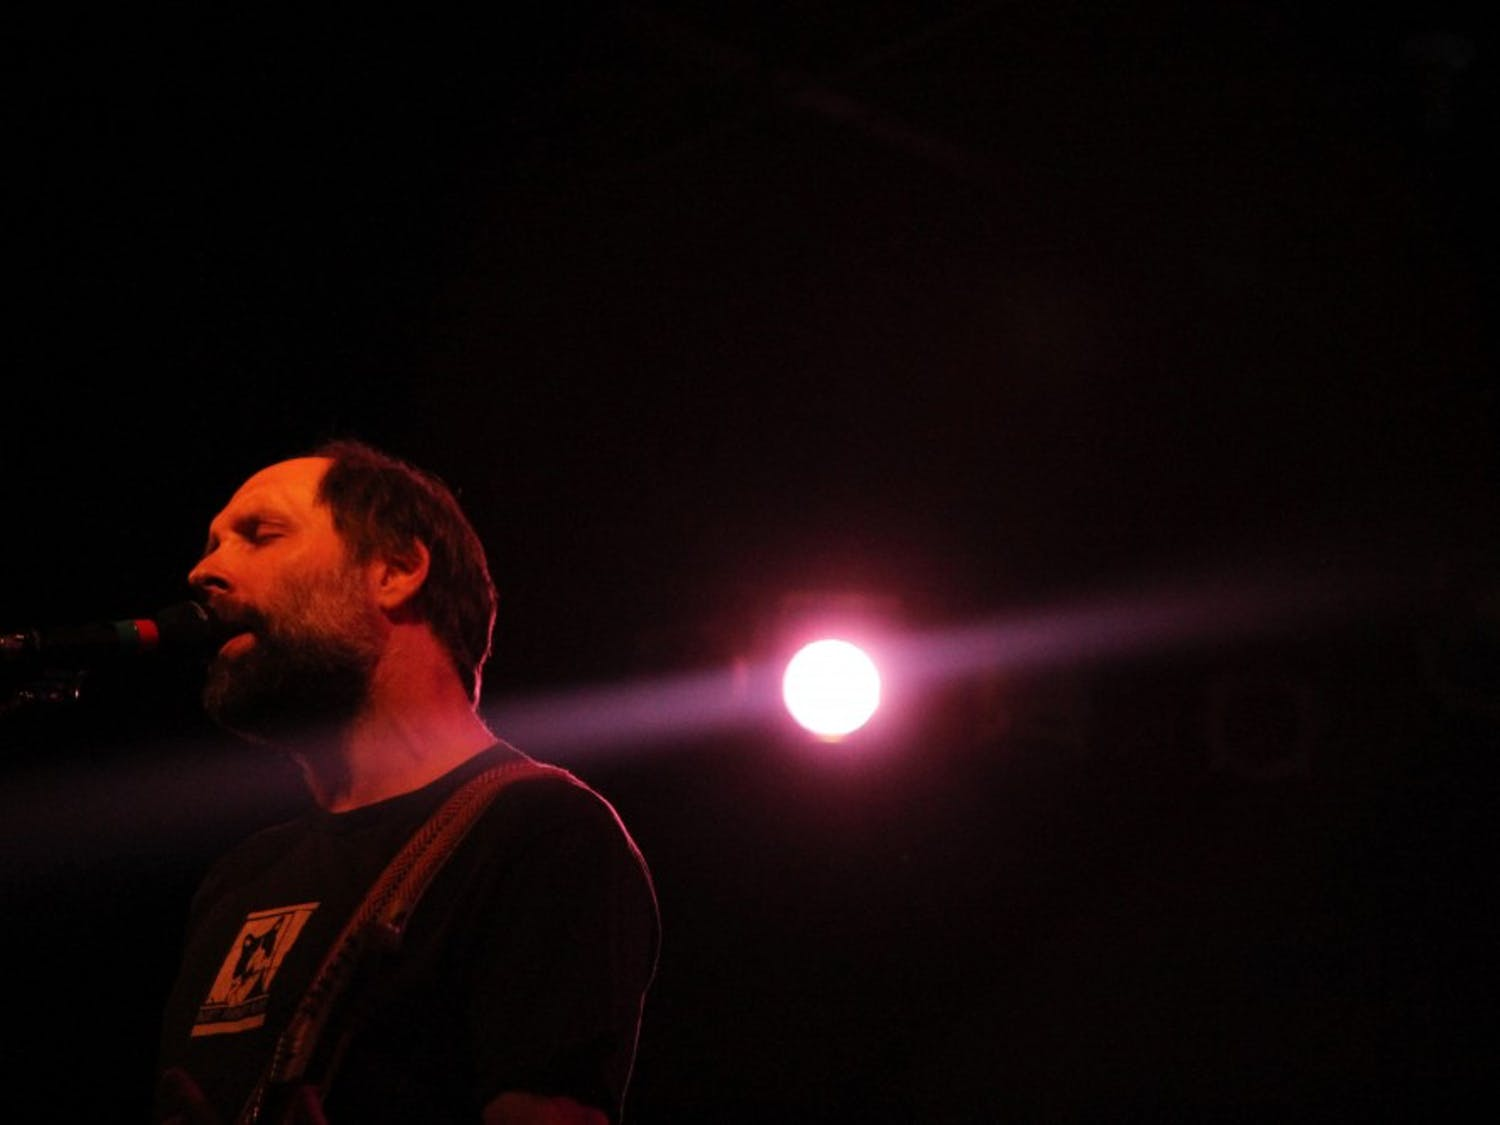 Built to Spill performs at Cat's Cradle in Carrboro on October 30, 2013.